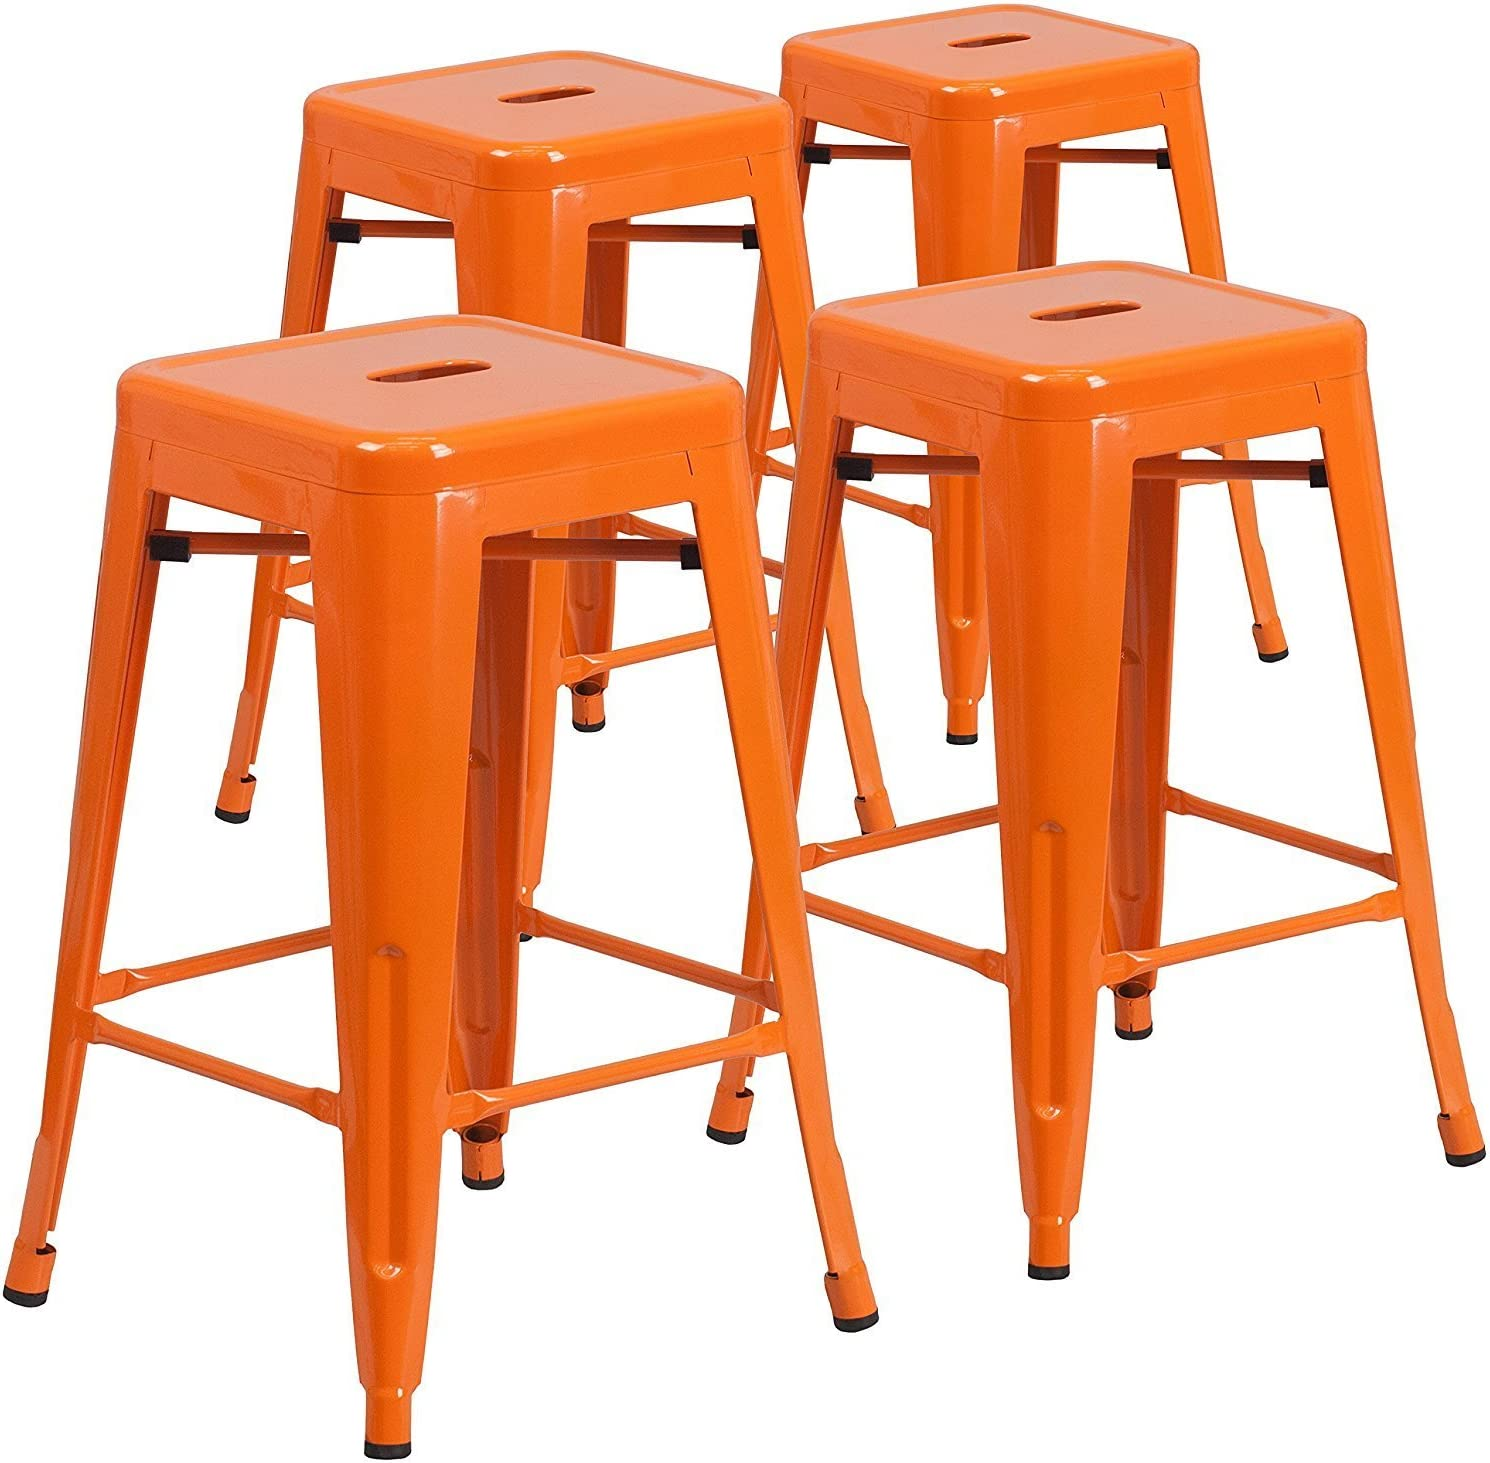 """Vogue Furniture Direct 24"""" High Barstools Backless Orange Metal barstool Indoor-oudoor Counter Height Stool with Square Seat, Set of 4"""